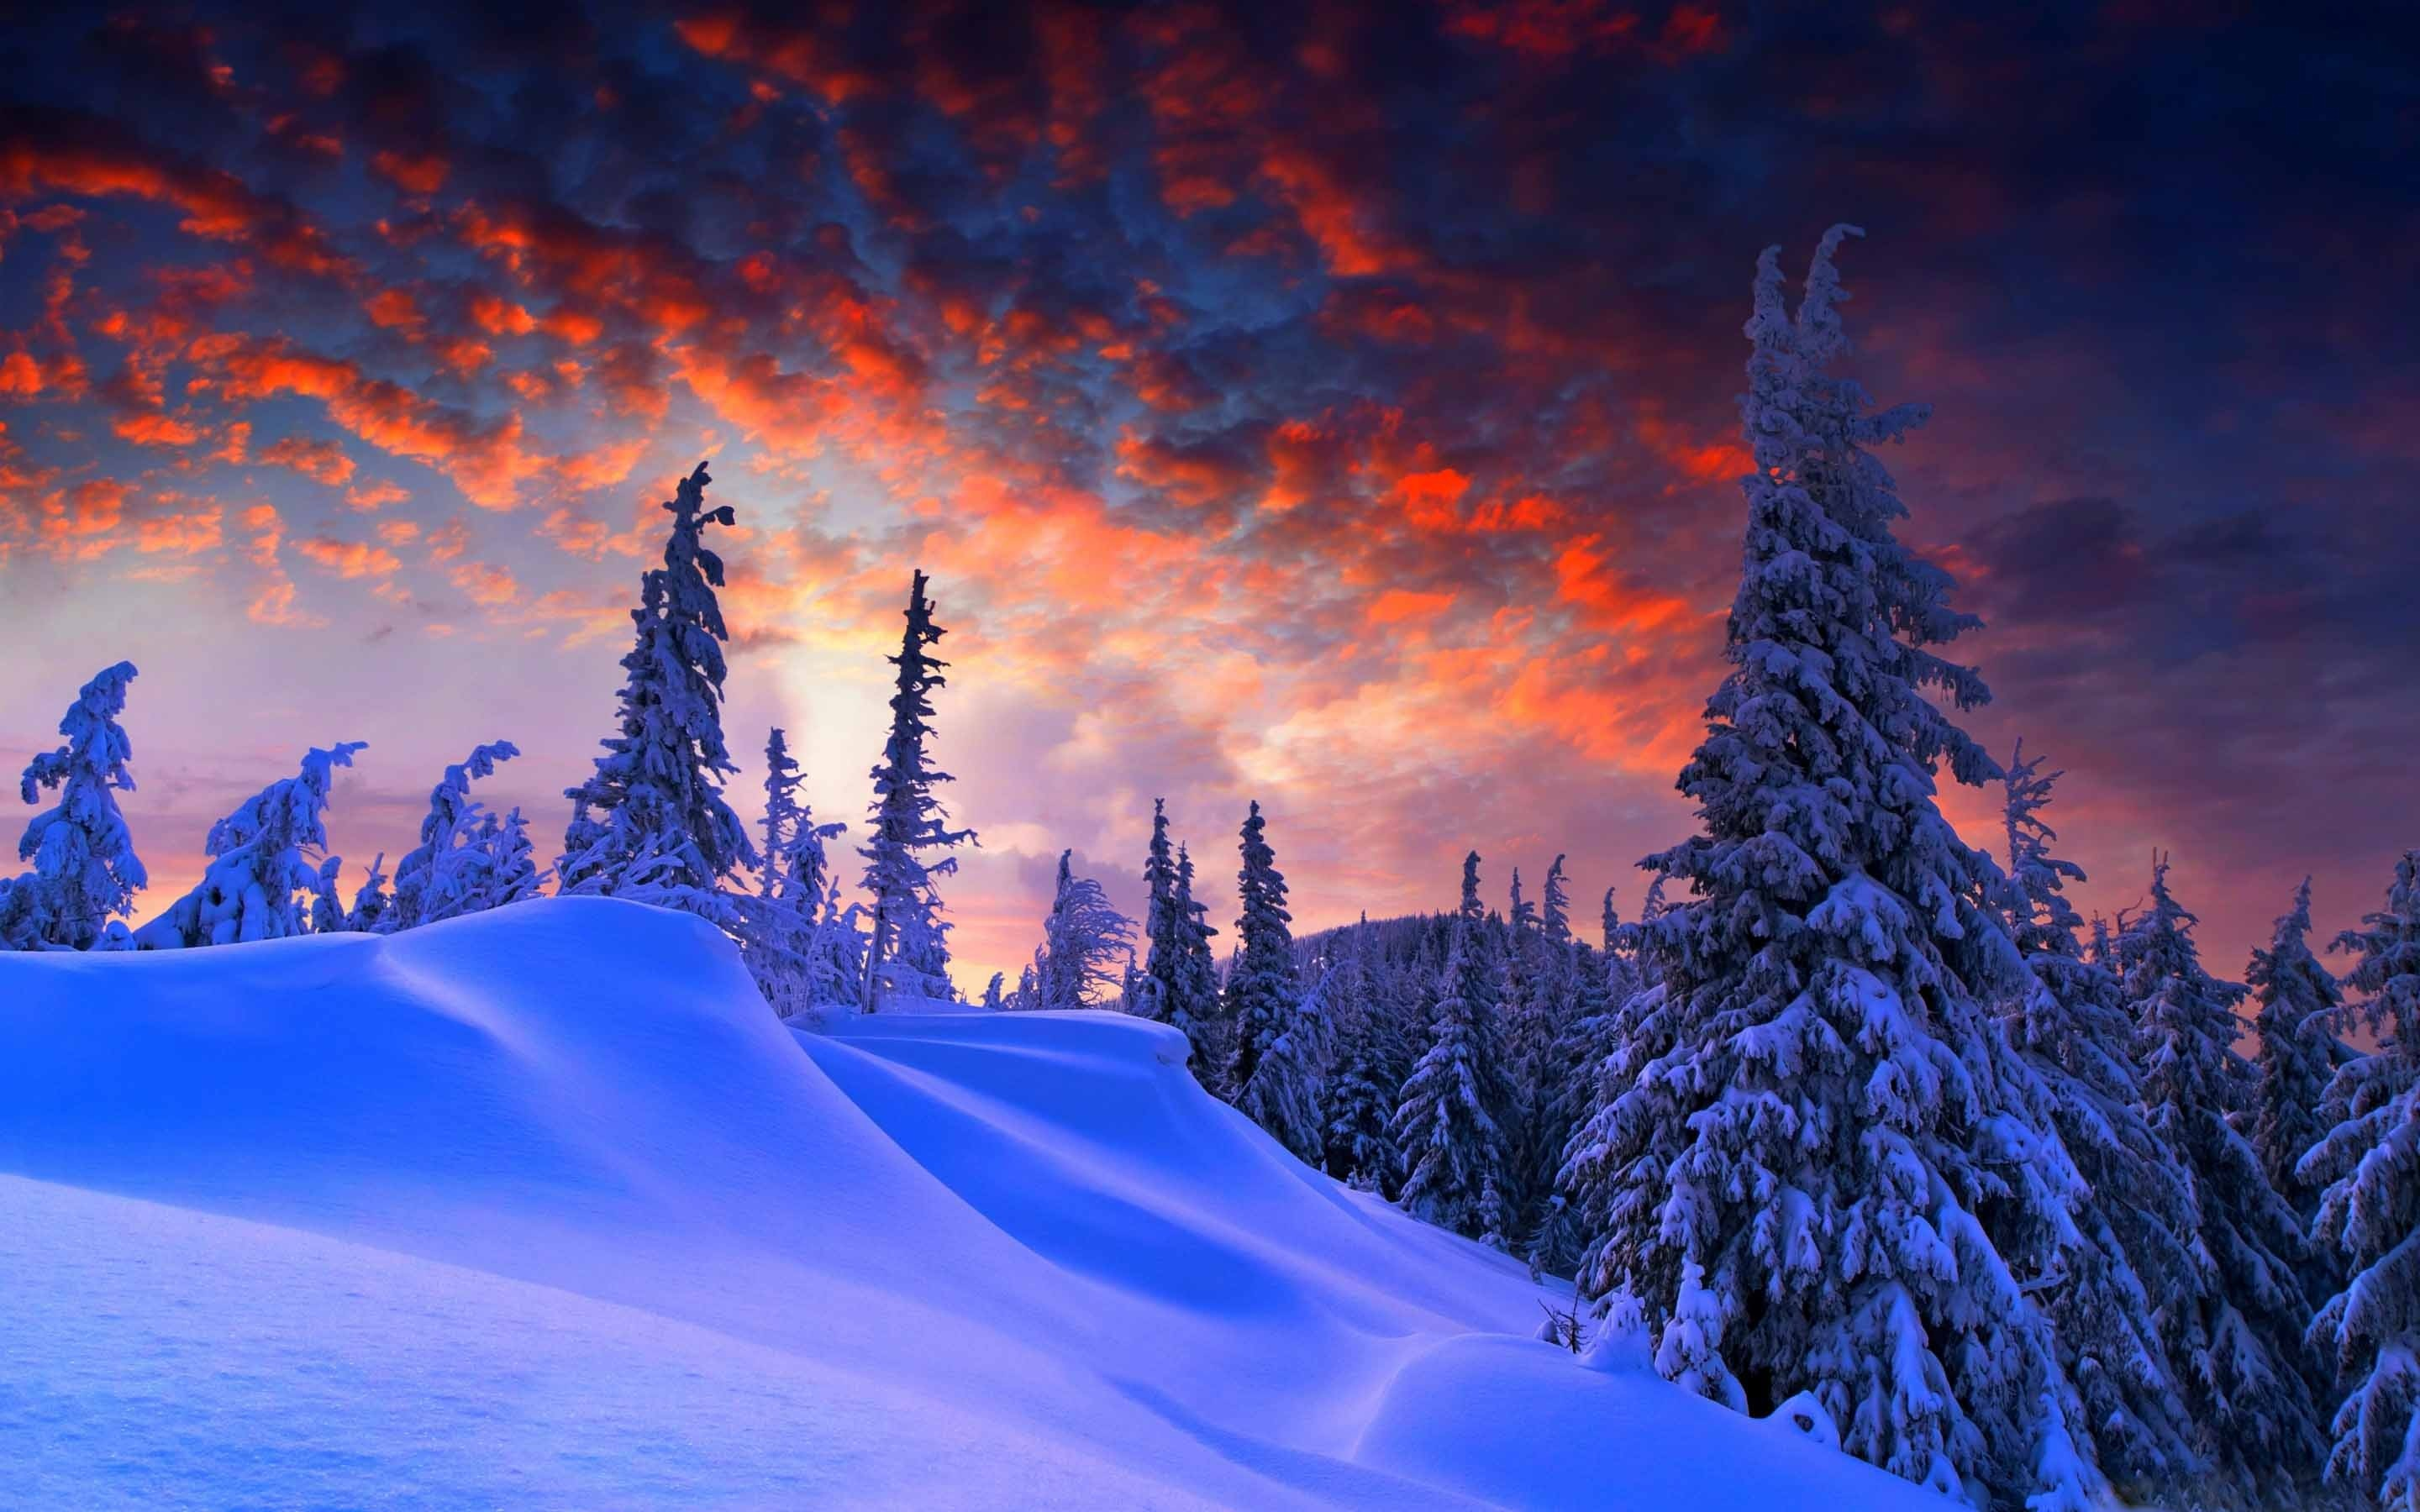 Res 2560x1440 Winter Mountain 51449 Hd Wallpaper